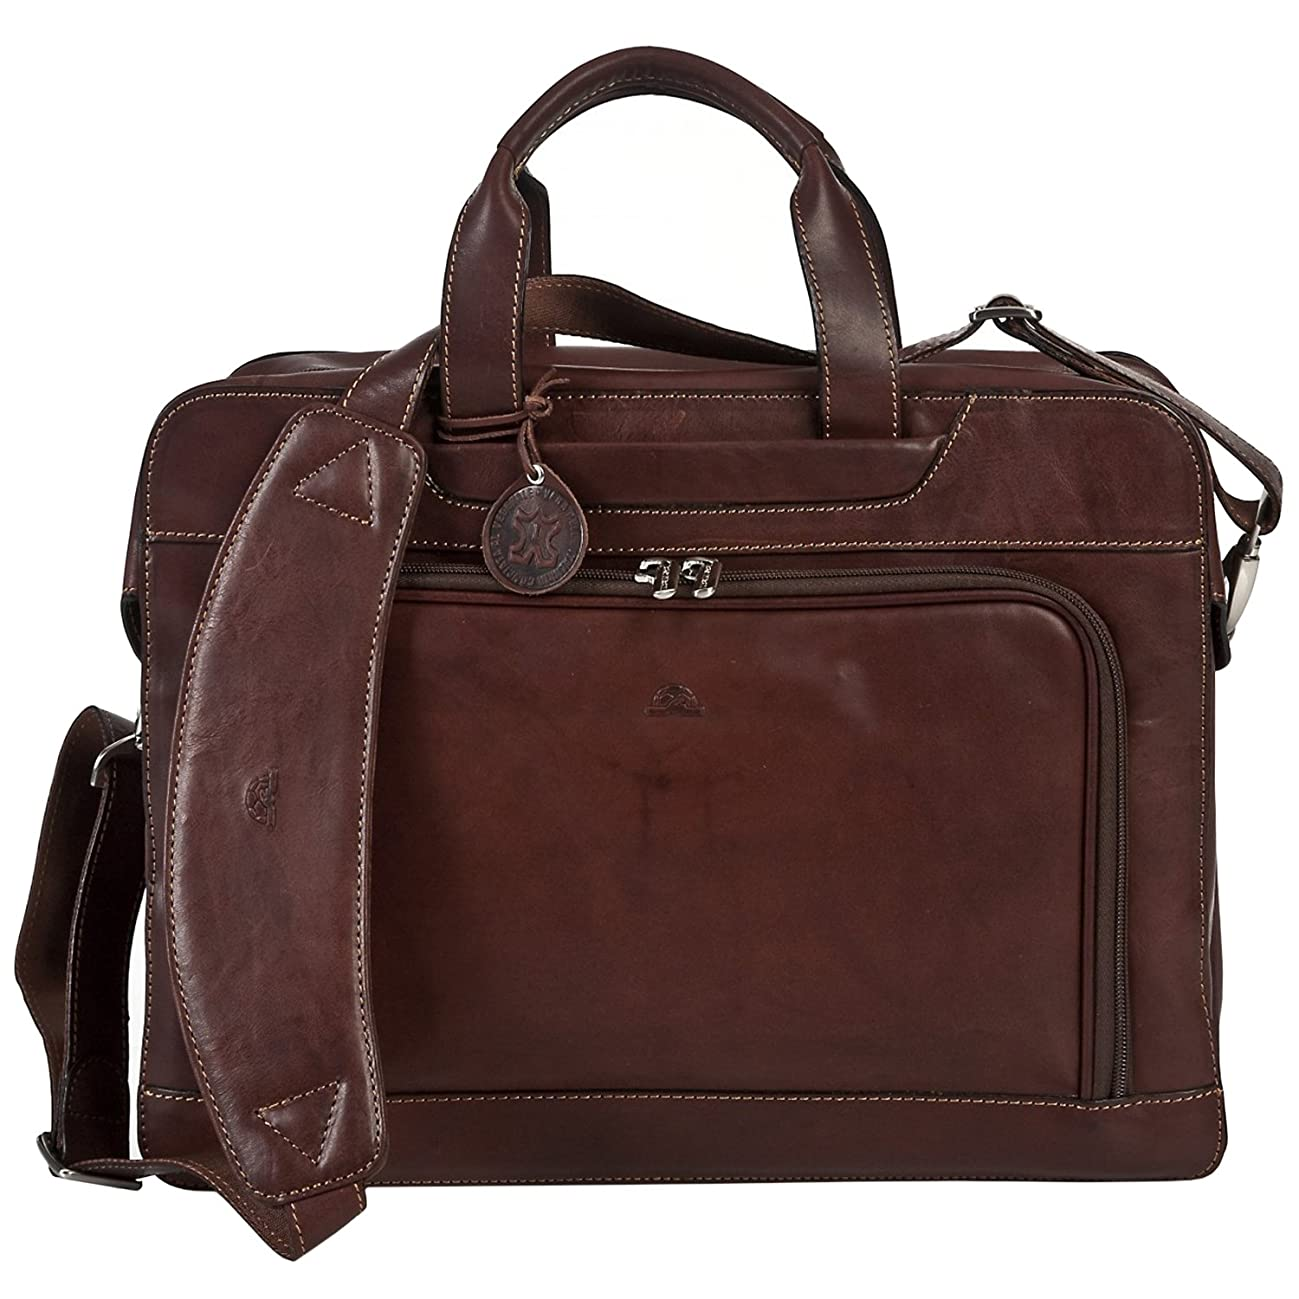 Tony Perotti Italian Leather Laptop Double Compartment Leather Briefcase